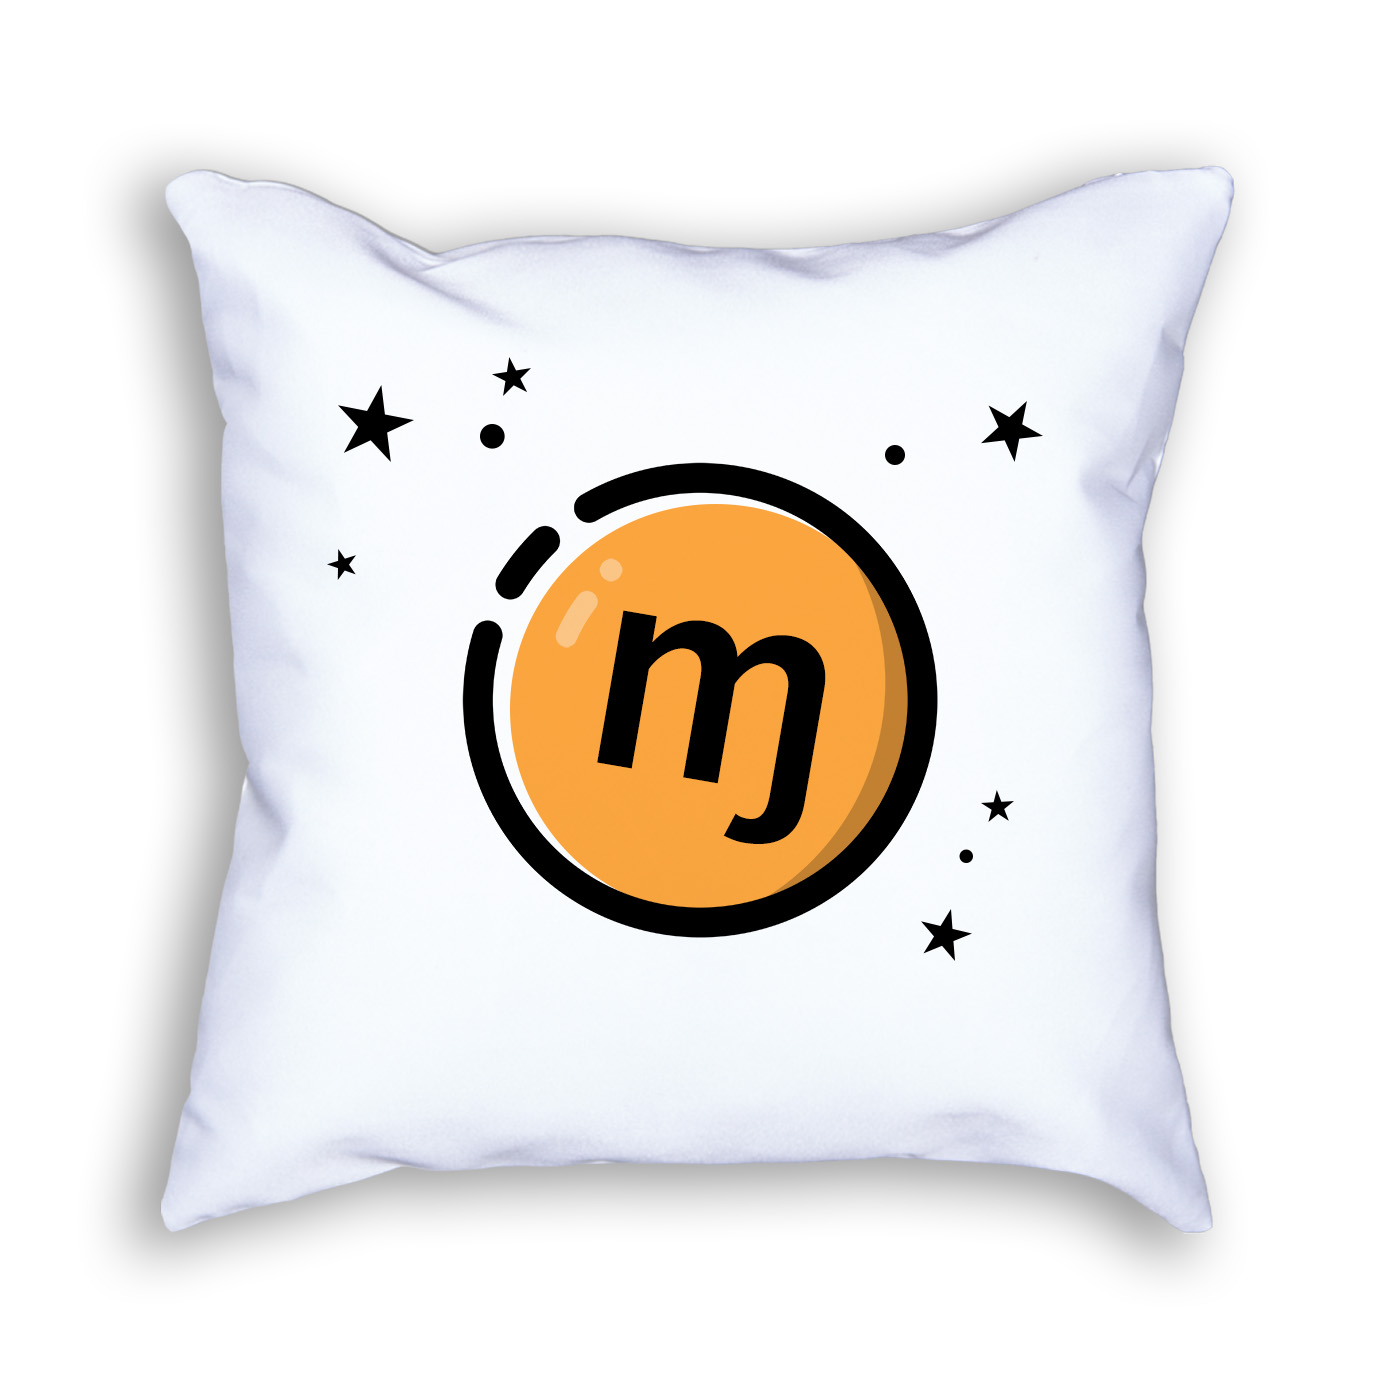 Monero Symbol Decorative Throw Pillow